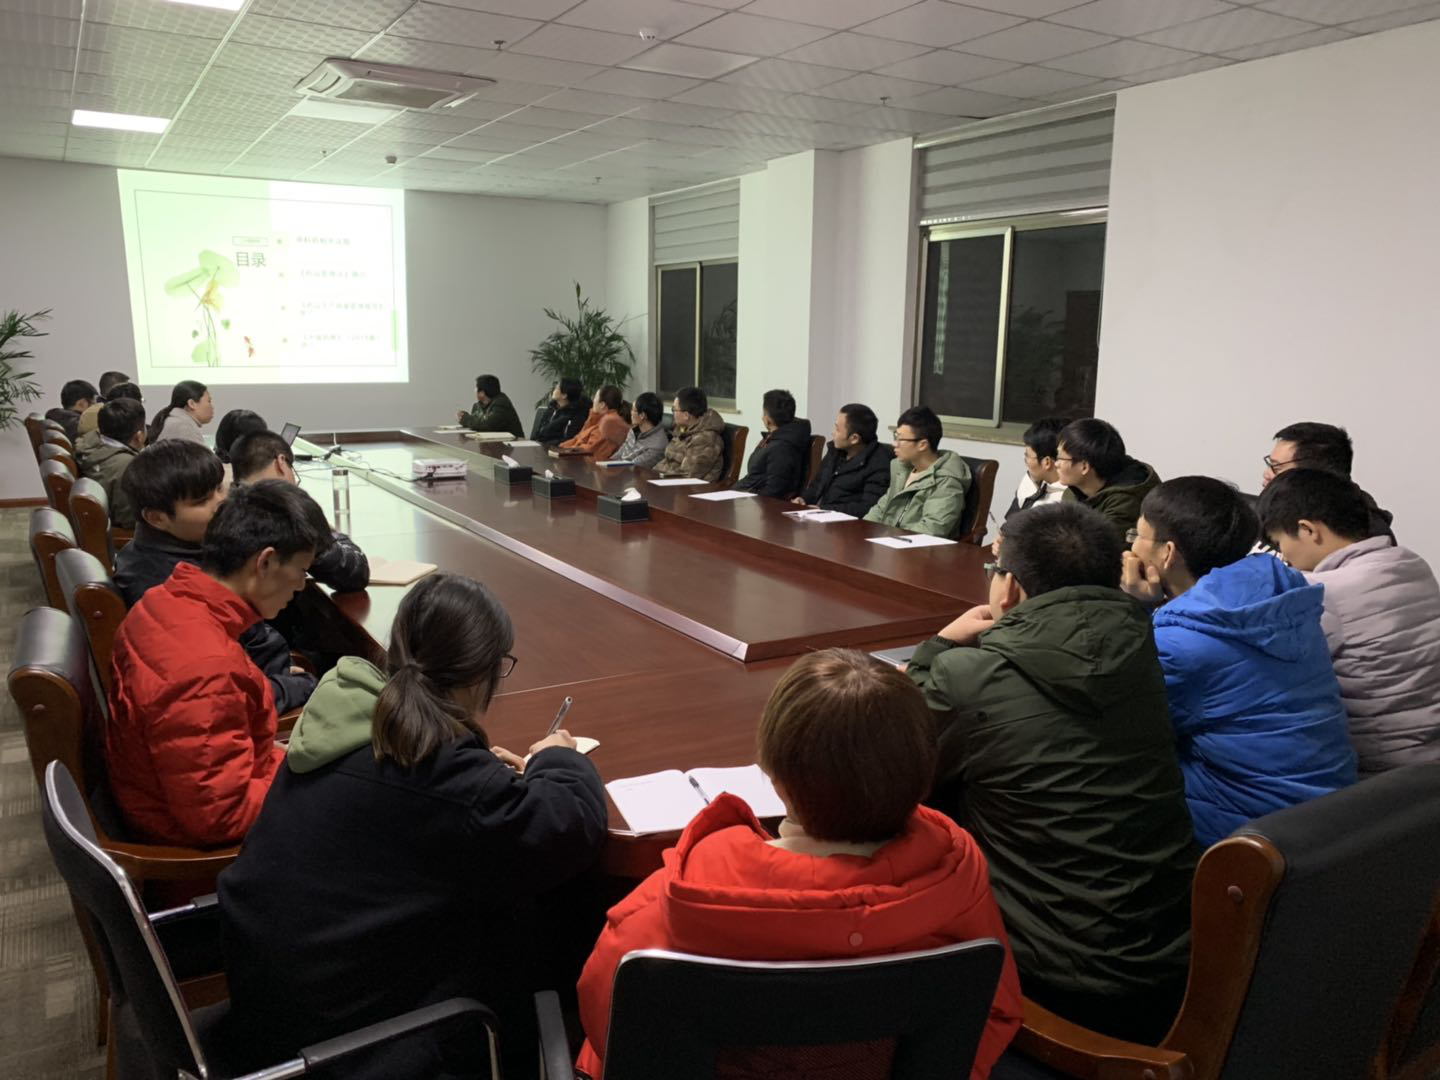 'The Second Internal Training Meeting on the Polypeptide Industry' of Huajun was held